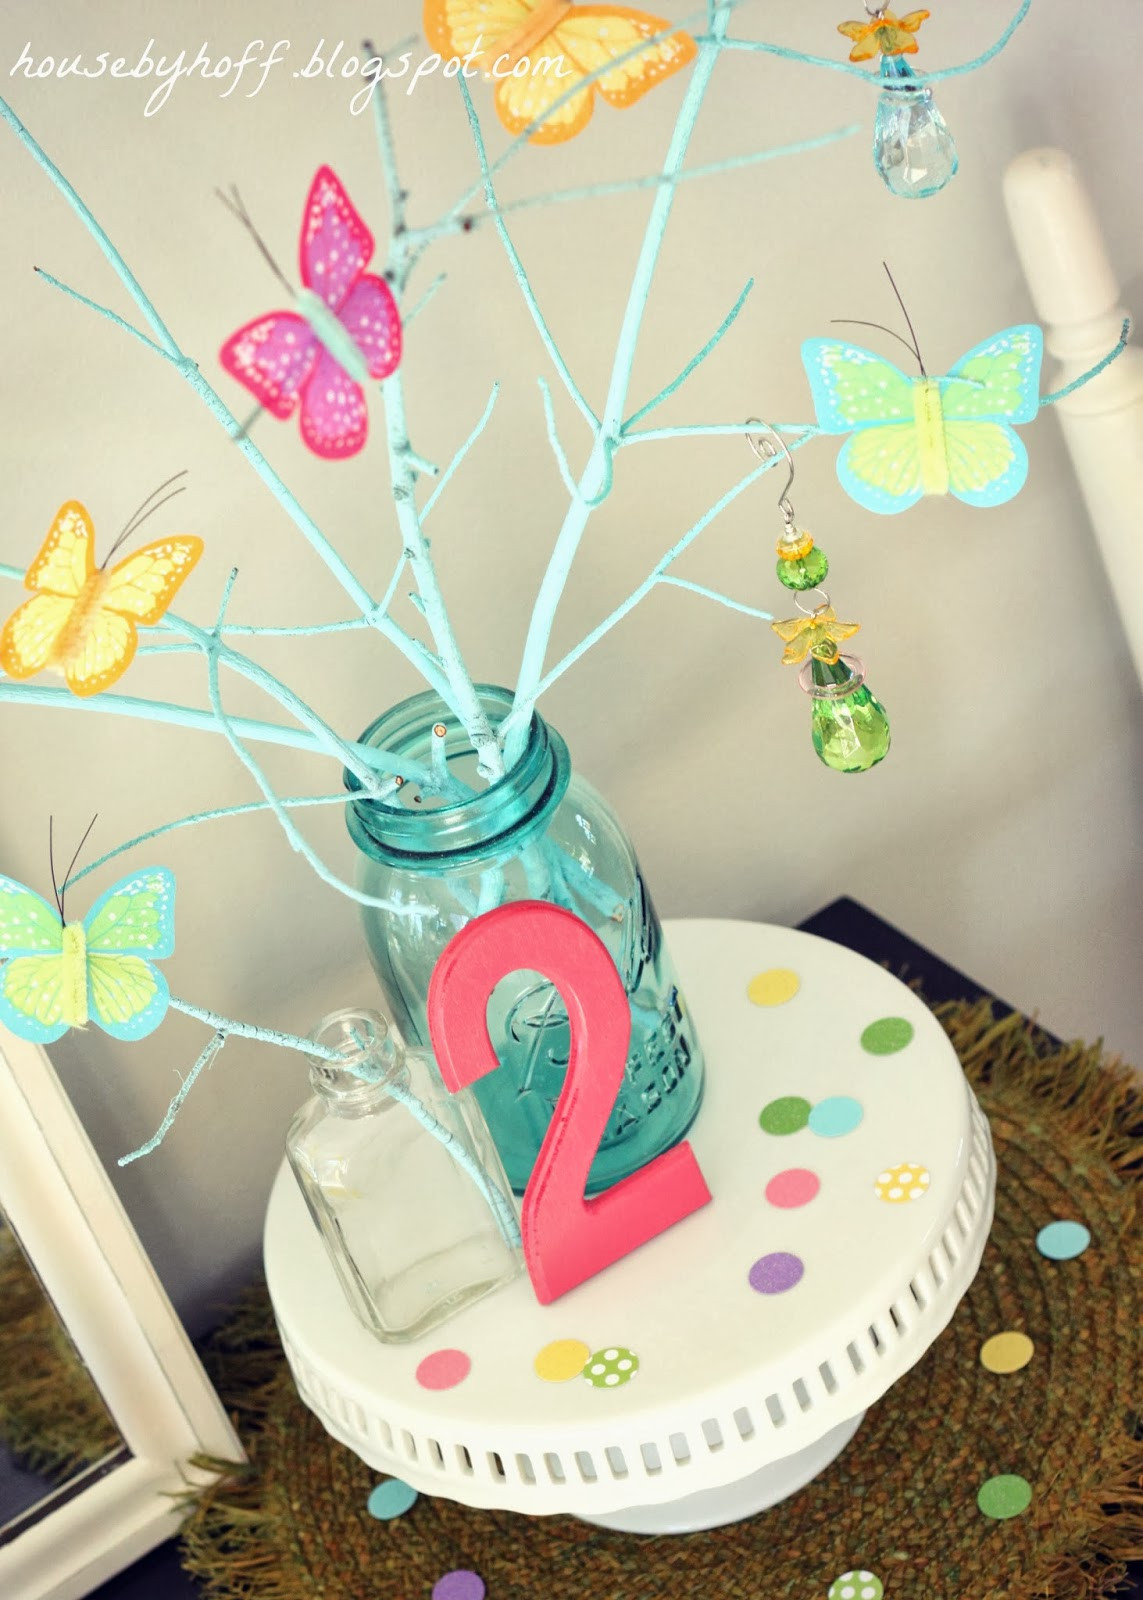 Best ideas about Butterfly Birthday Decorations . Save or Pin A Butterfly Picnic Birthday Party House by Hoff Now.